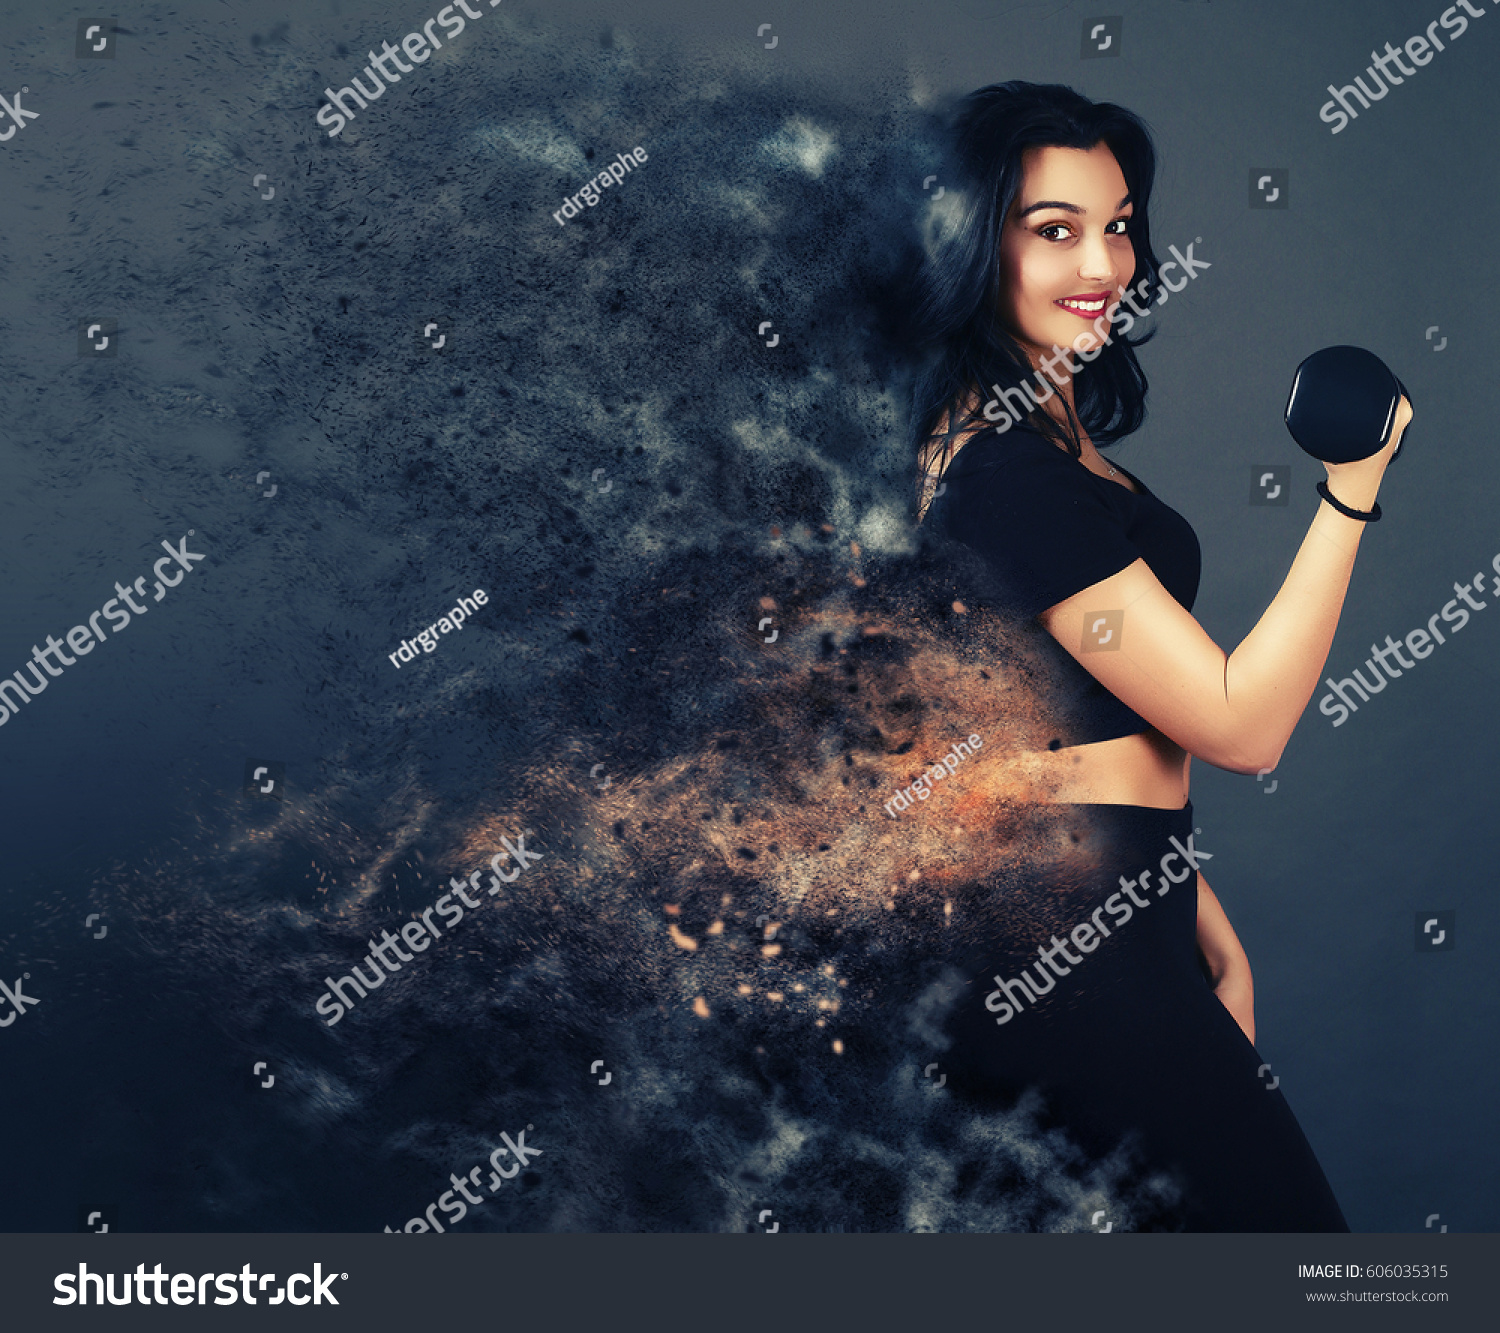 Edit Images Free Online - Dispersion effect | Shutterstock Editor